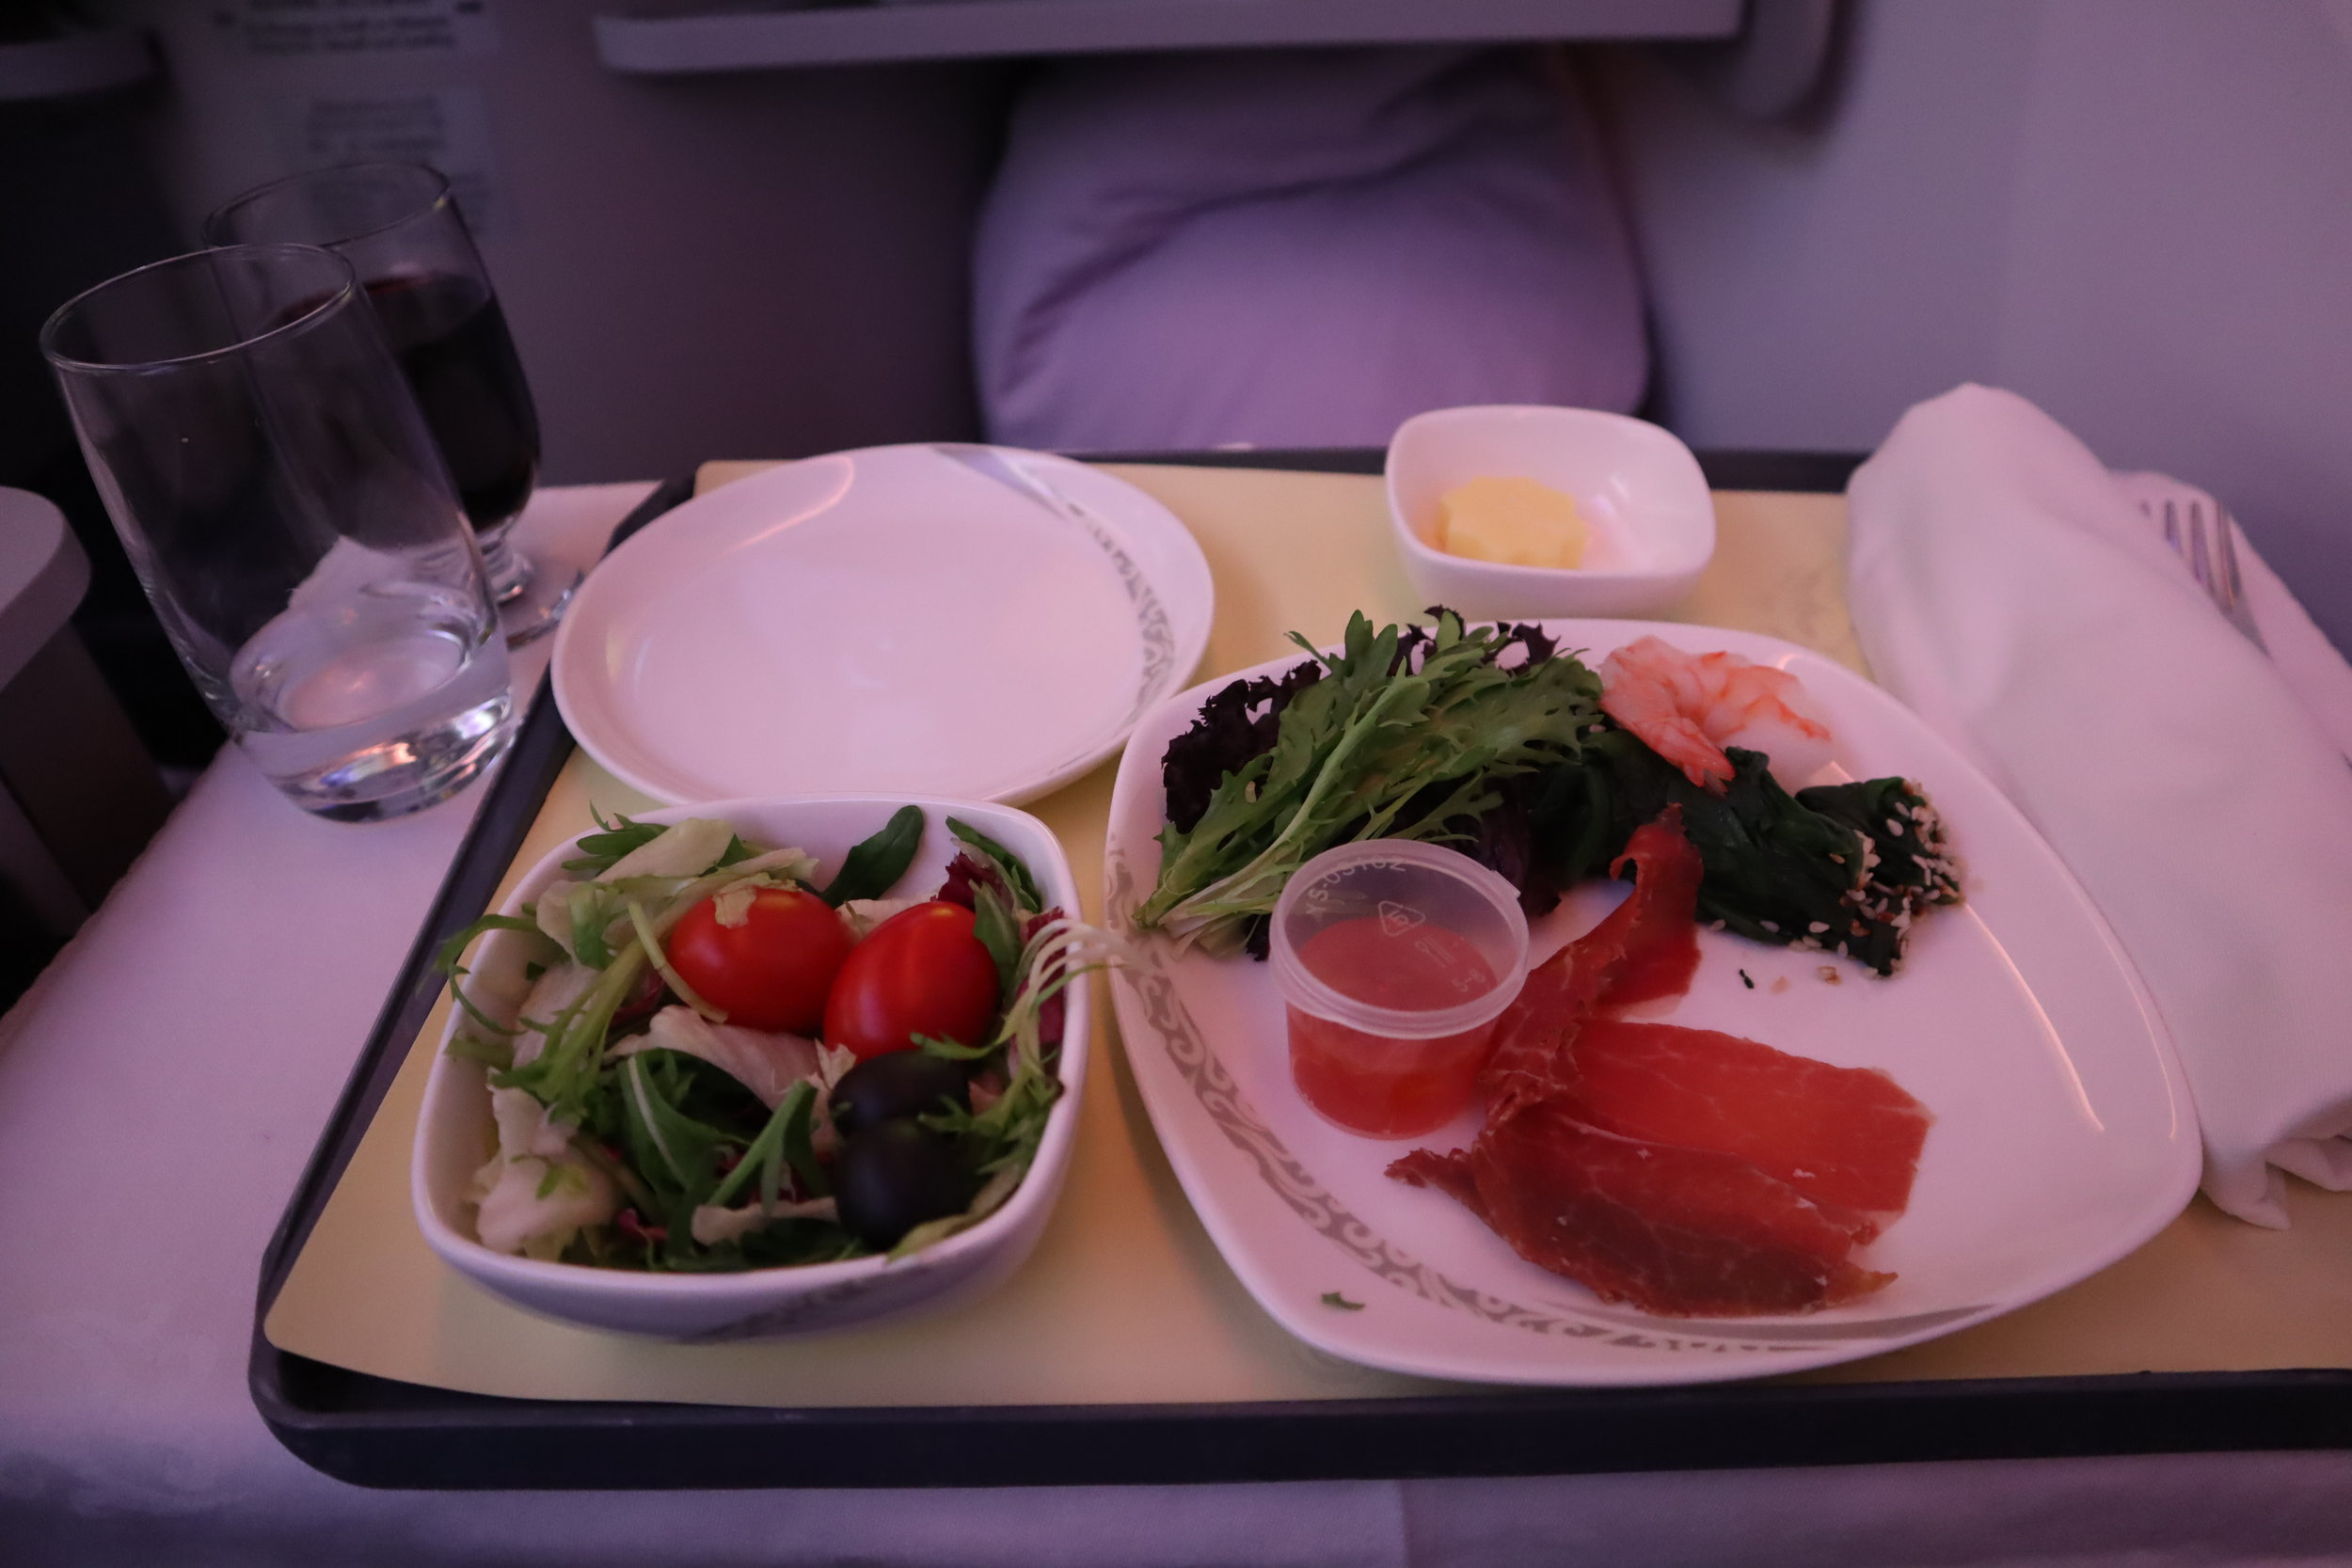 Air China business class – Cold cut plate with salad